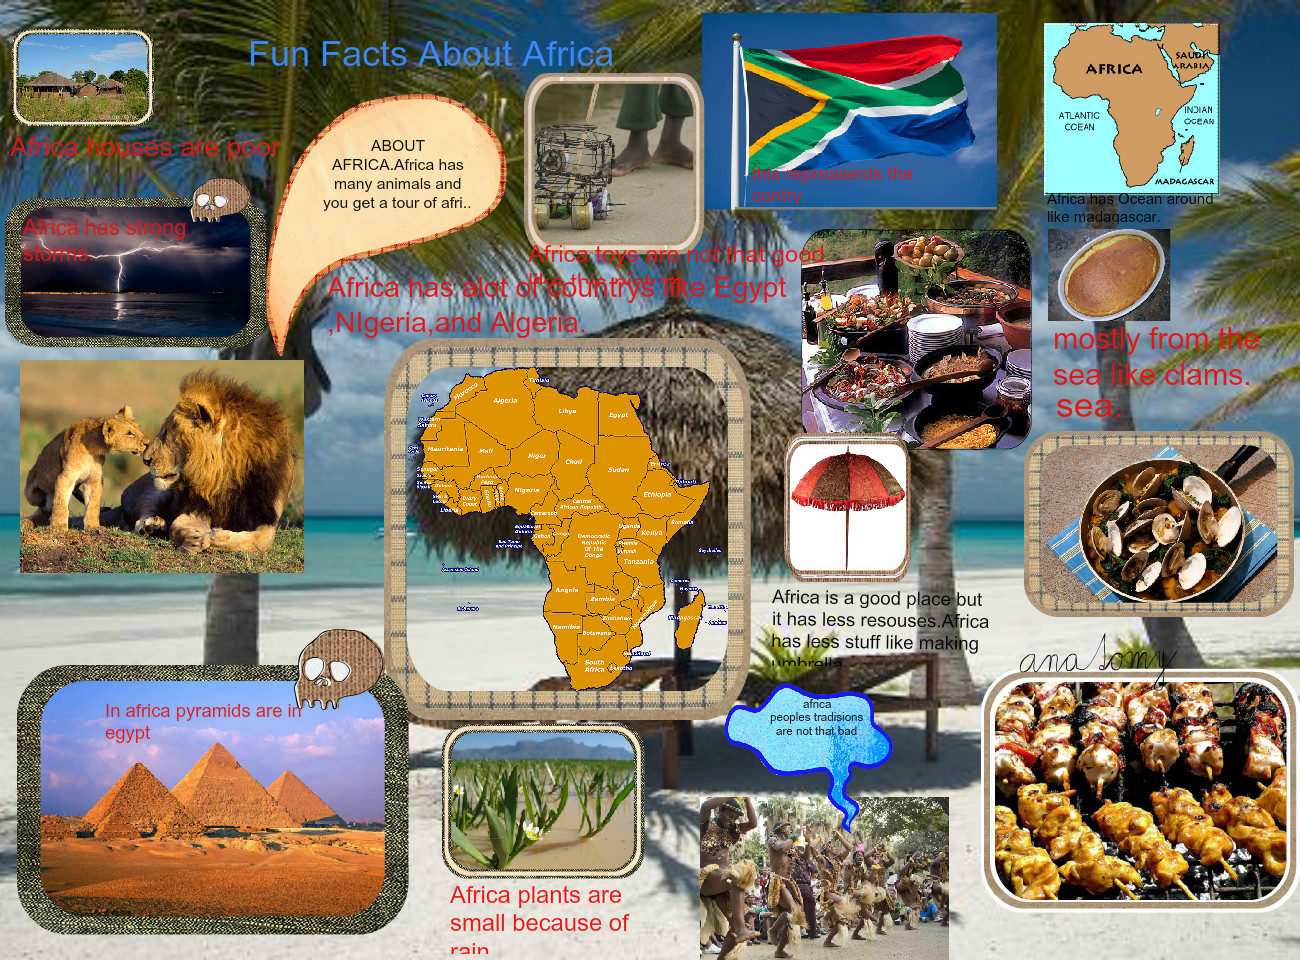 Fun Facts About Africa